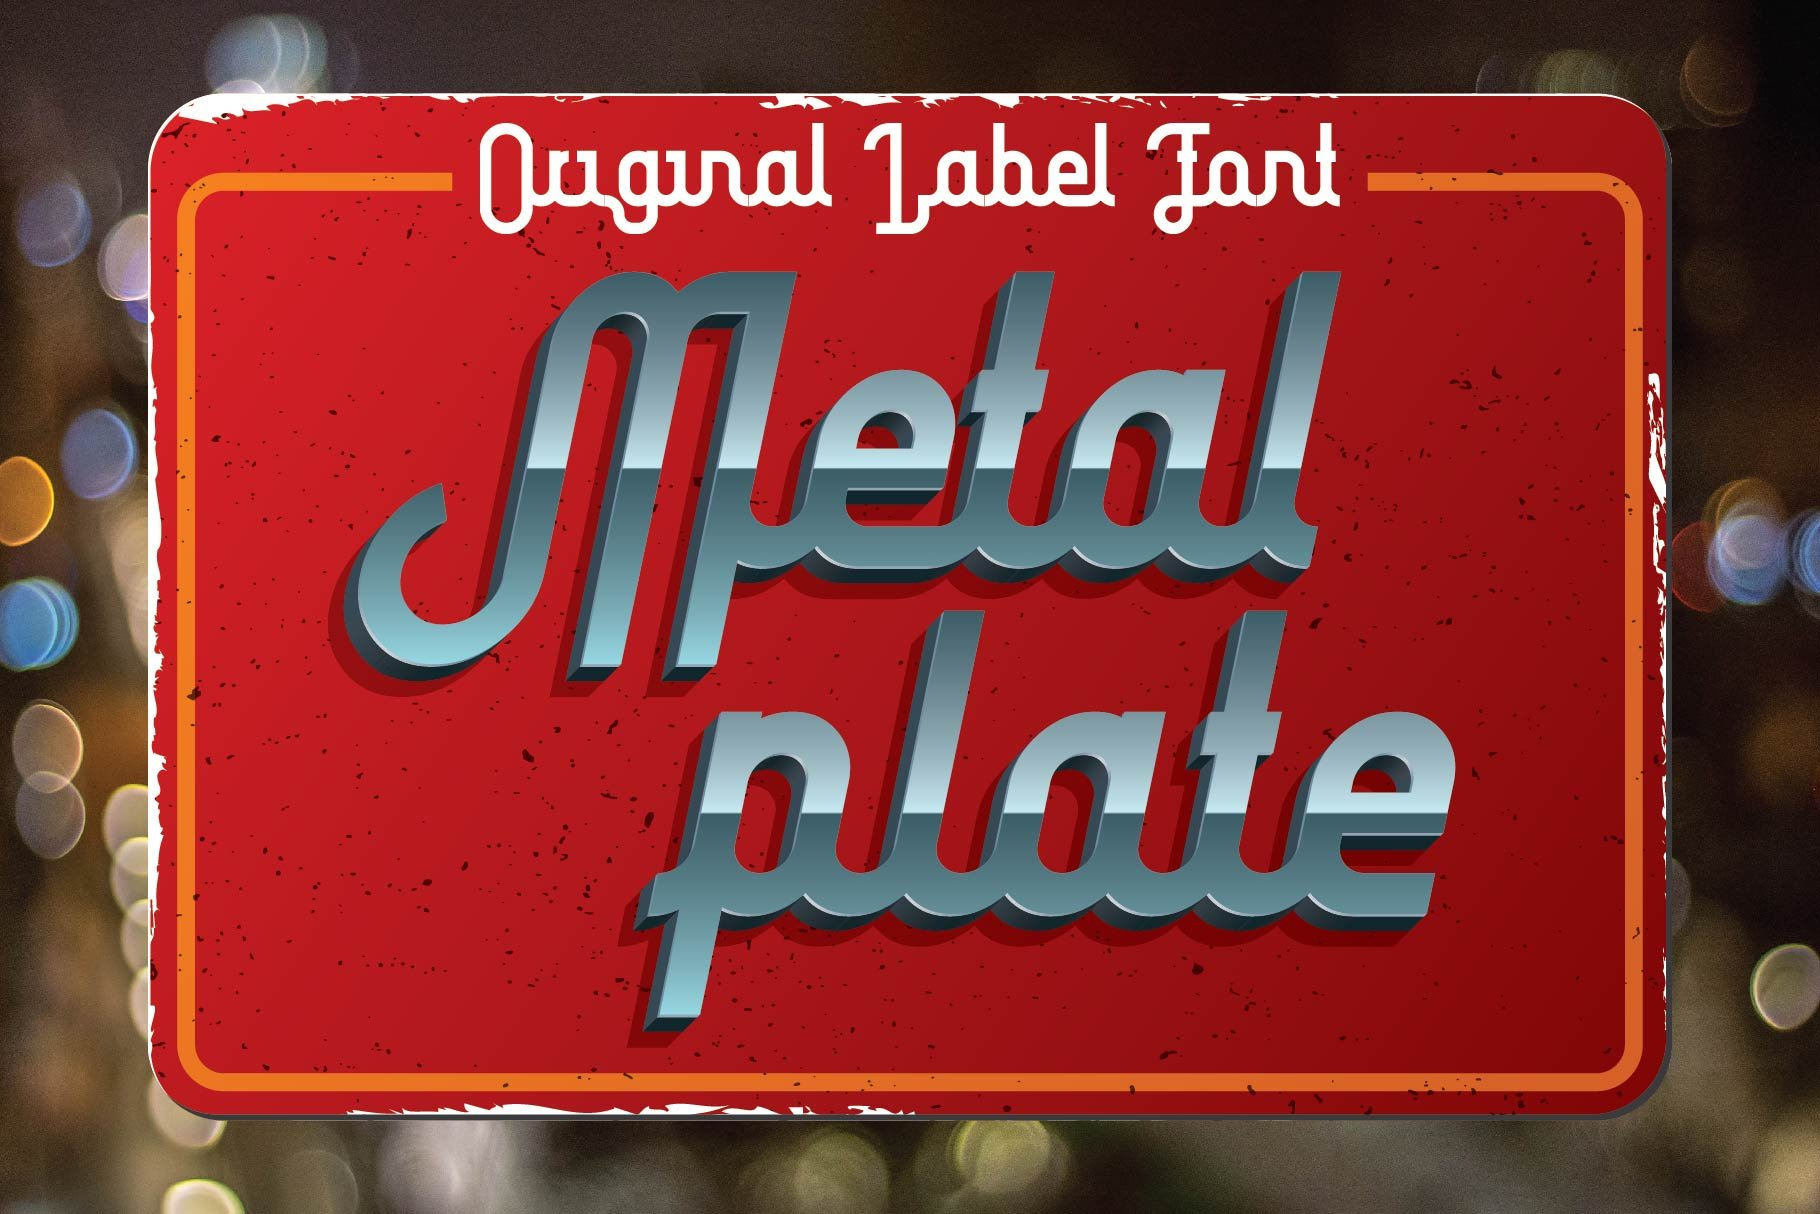 Stylish font on a velvet red substrate in the style of the movie Fast and the Furious.